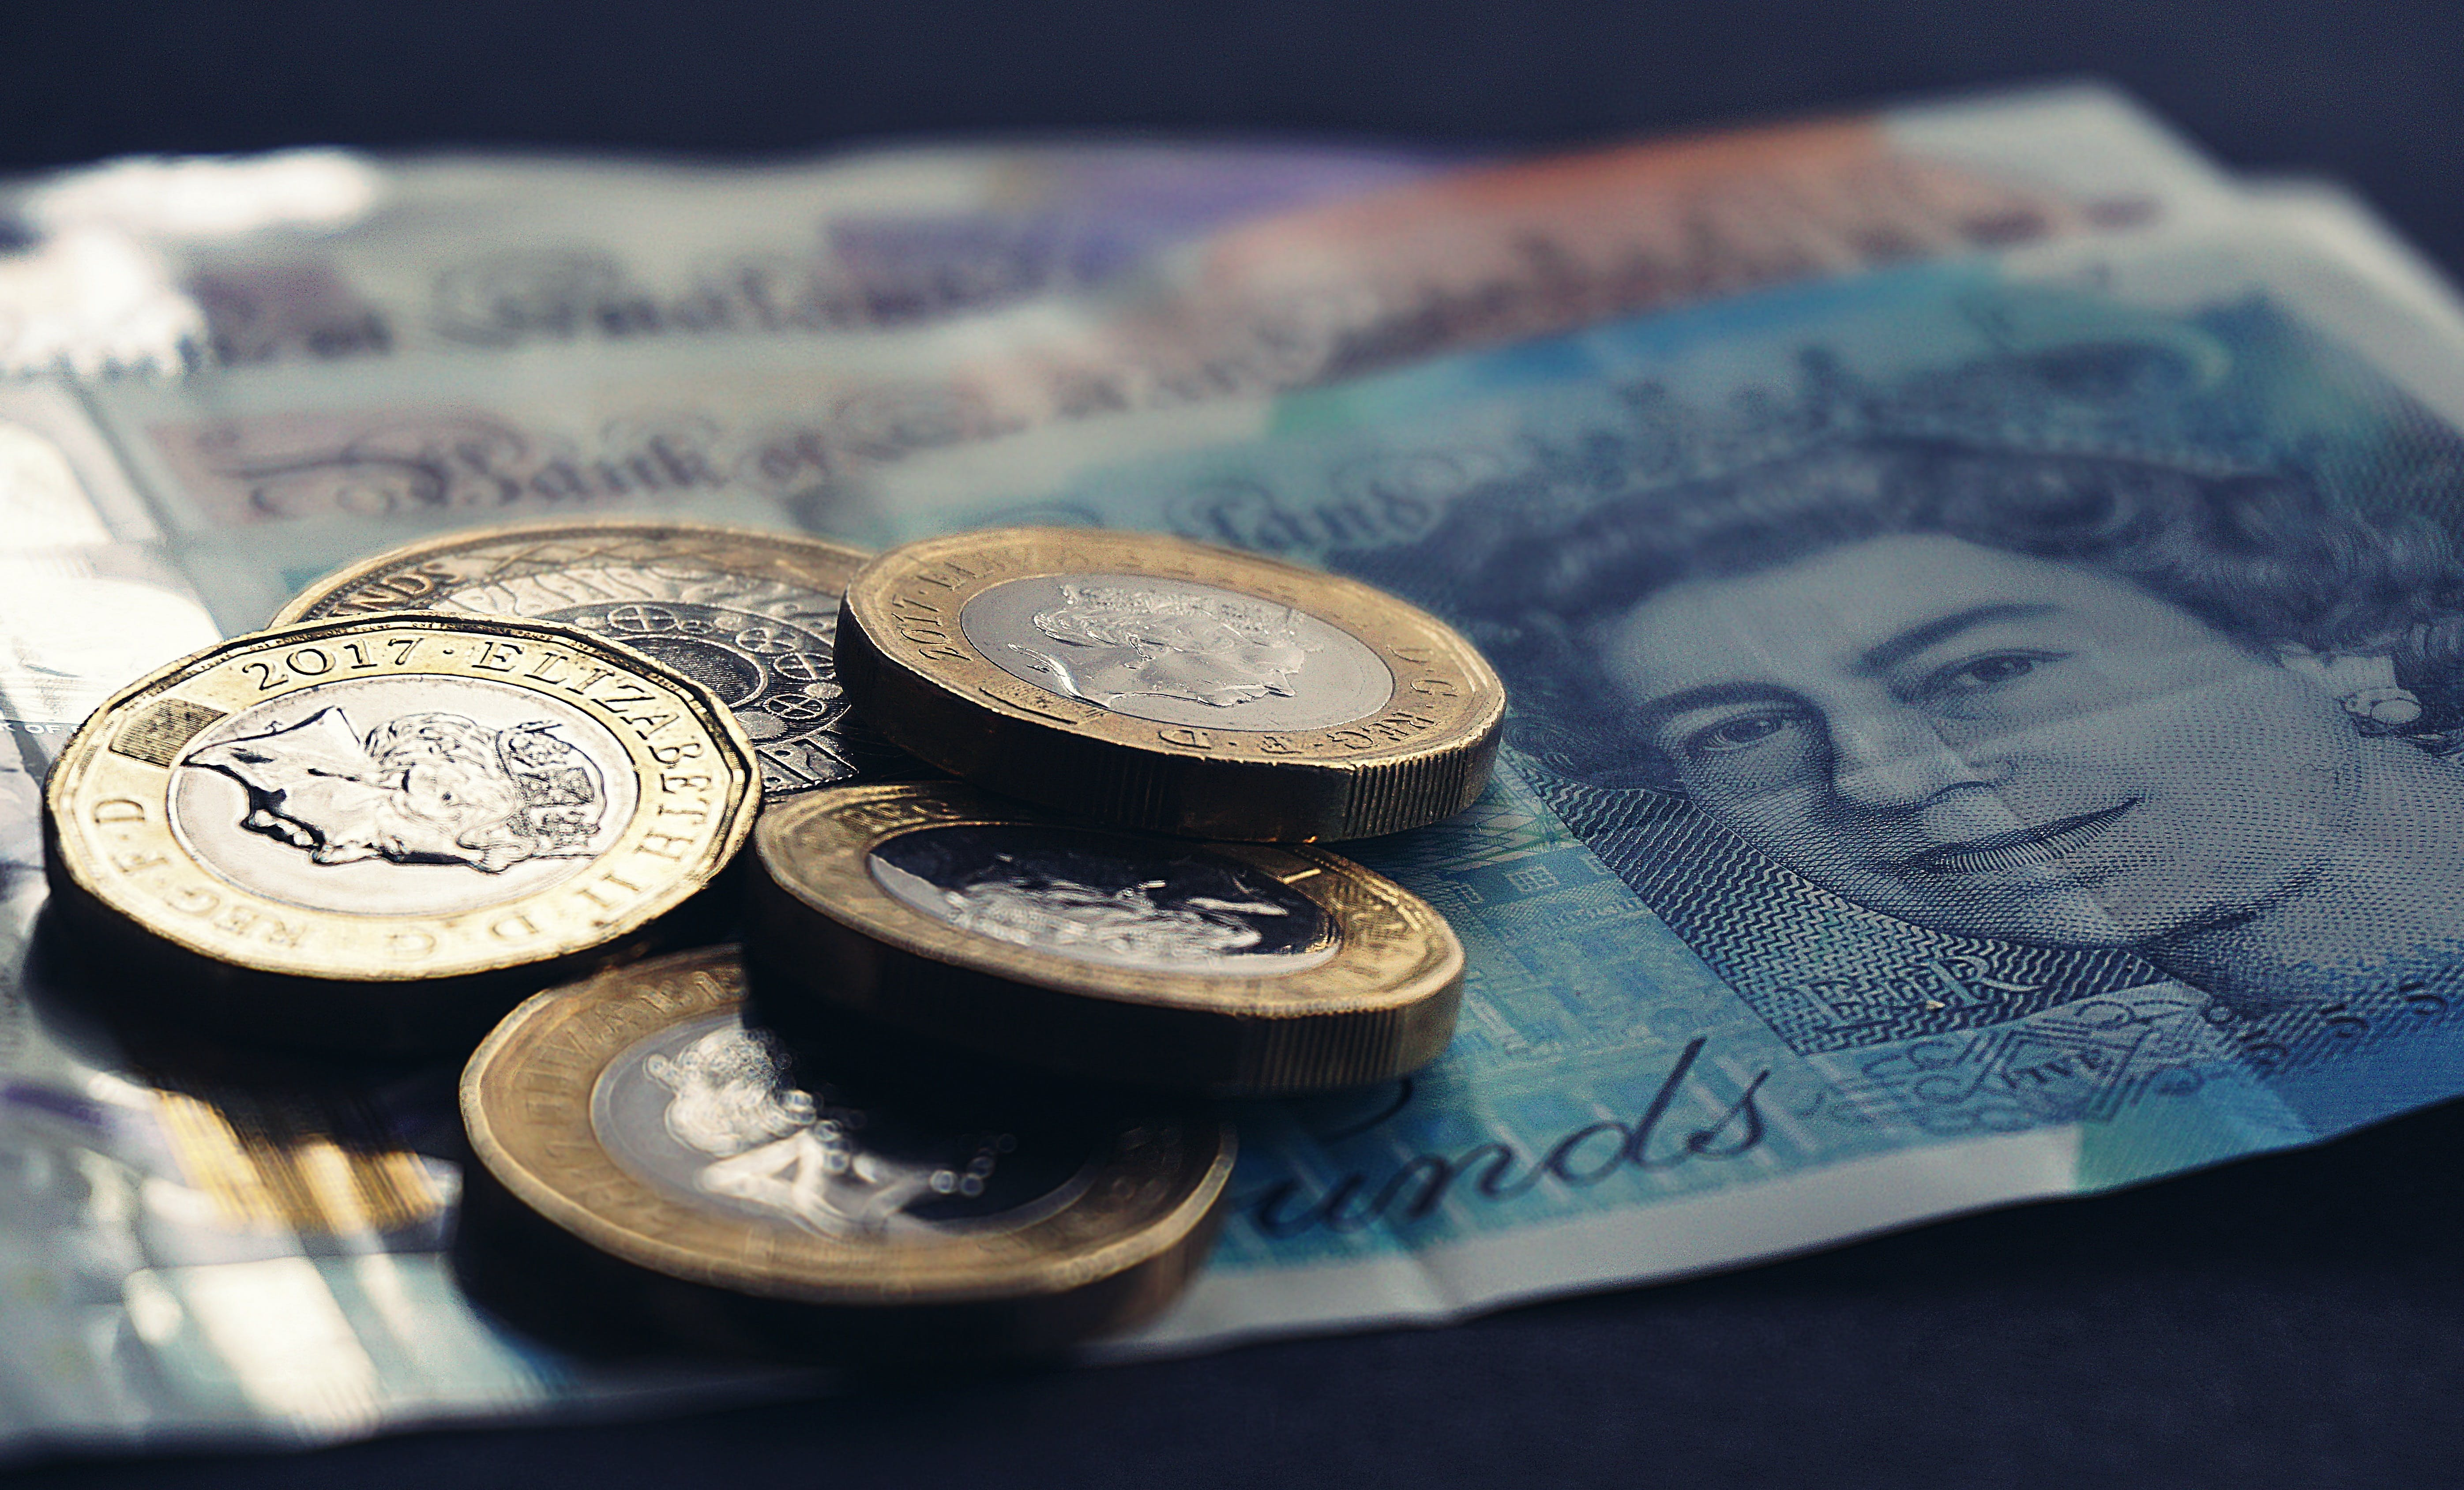 Free stock photo of money, coins, bank notes, cash